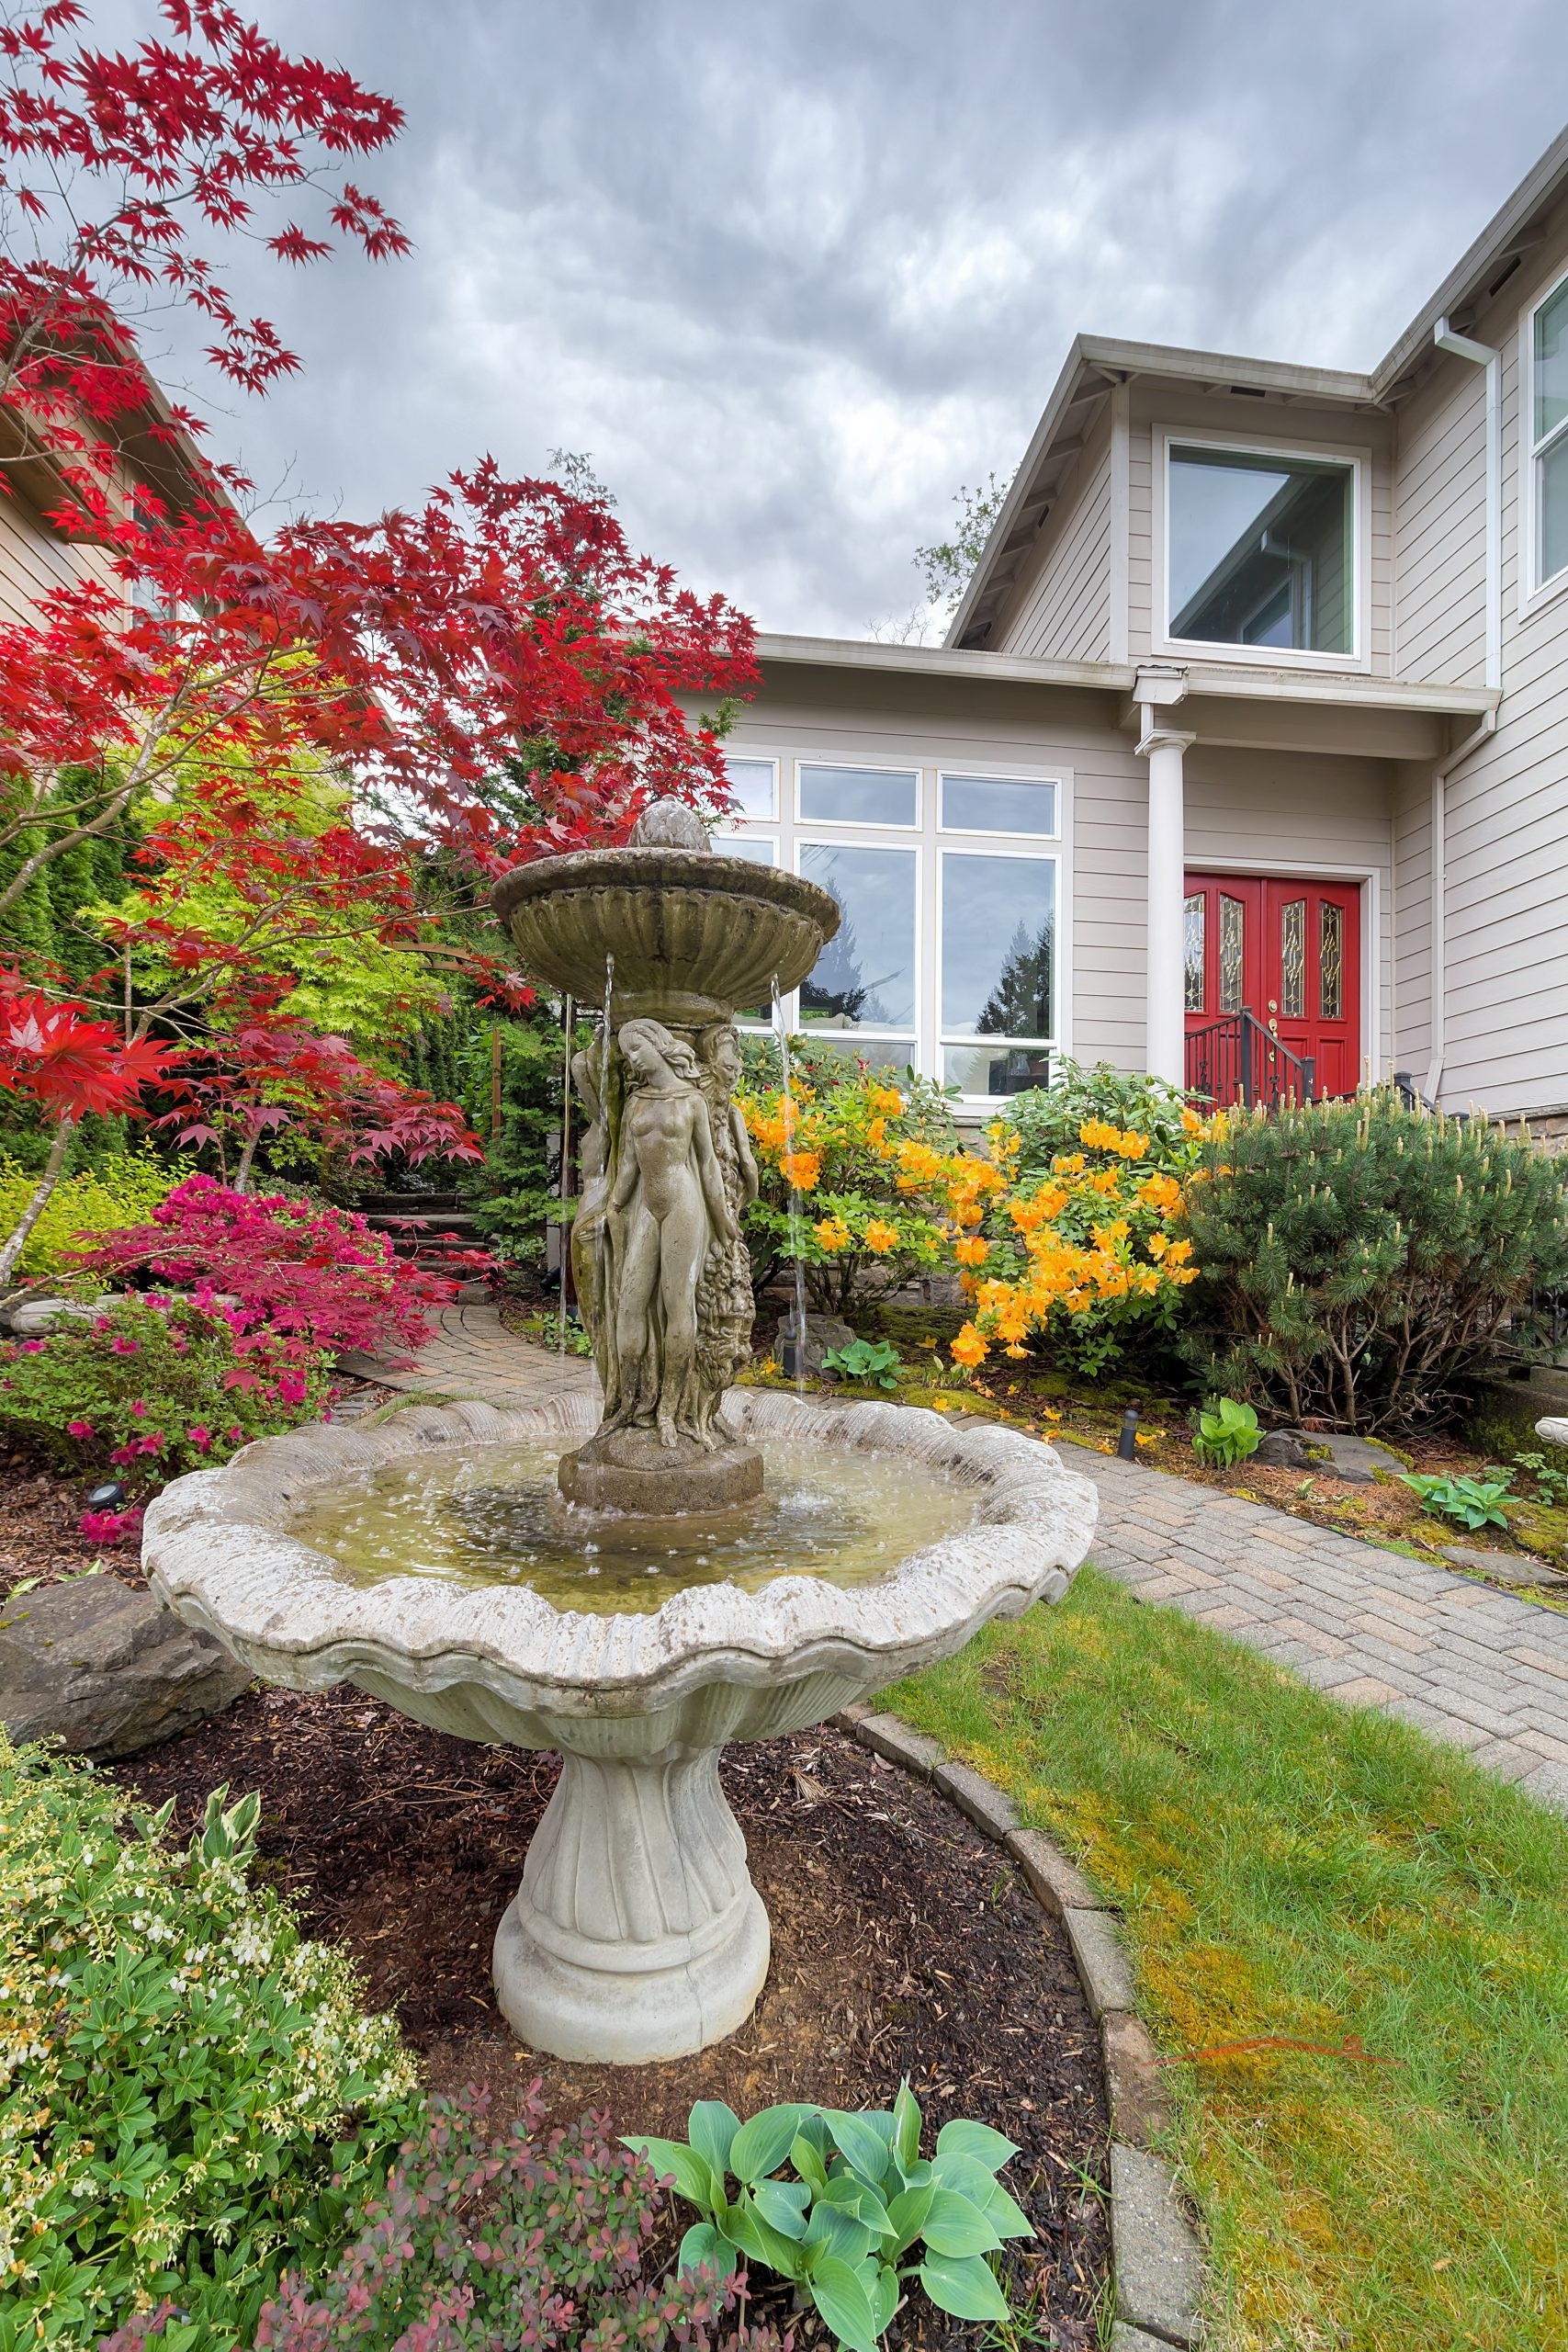 Water Fountain on Frontyard of Home